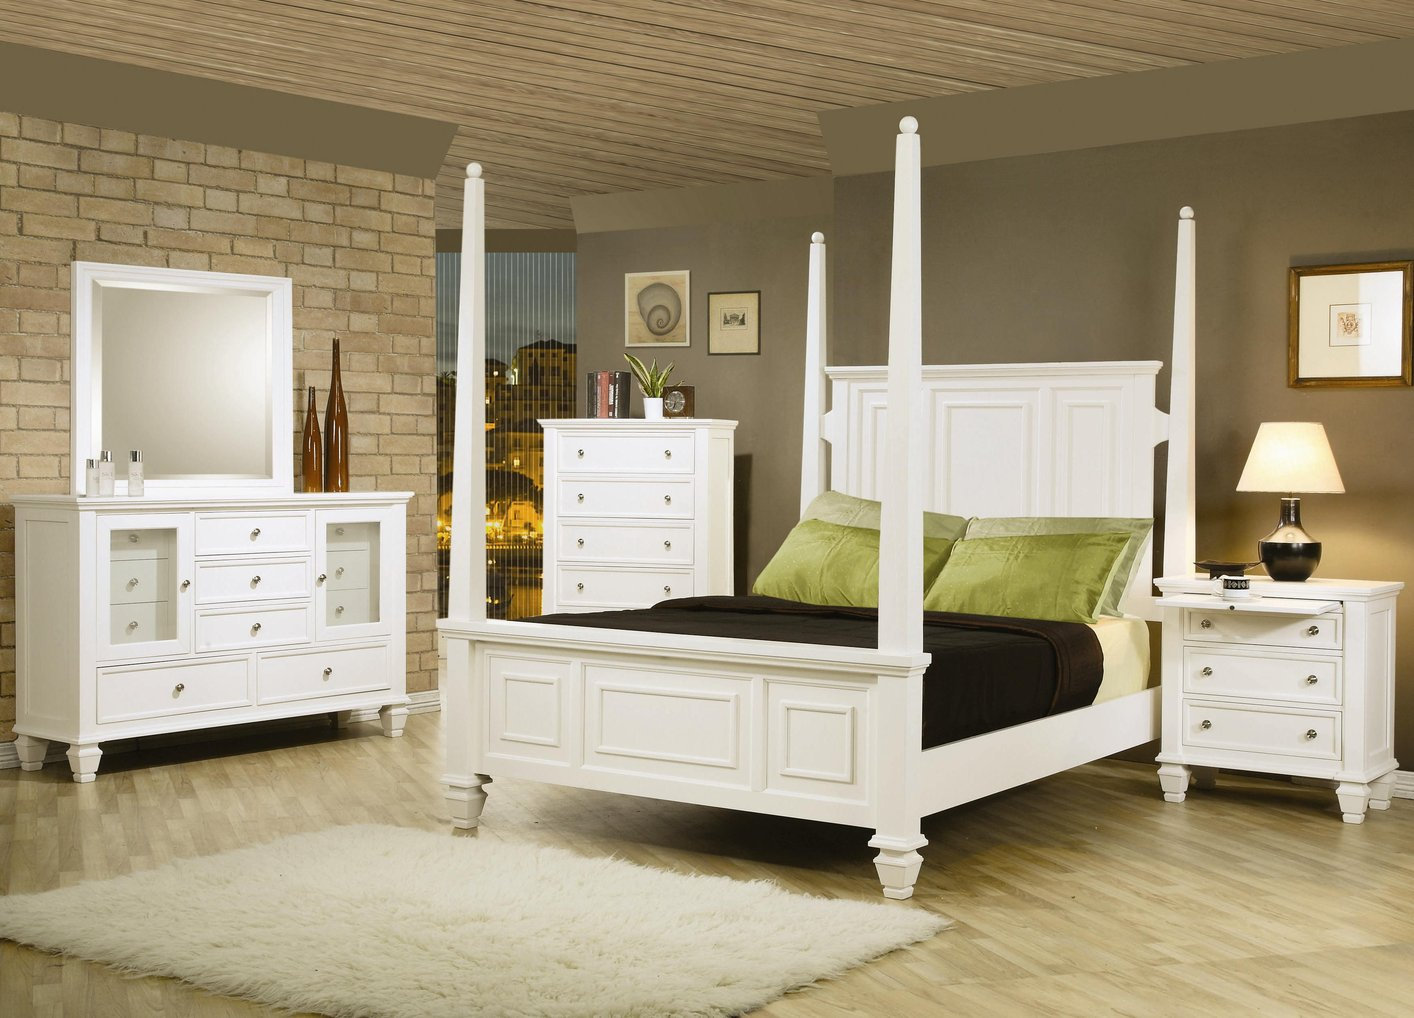 Ikea Malm Bedroom Furniture Cukjatidesign Com Bedroom Furniture At Ikea Jhoneslavaco